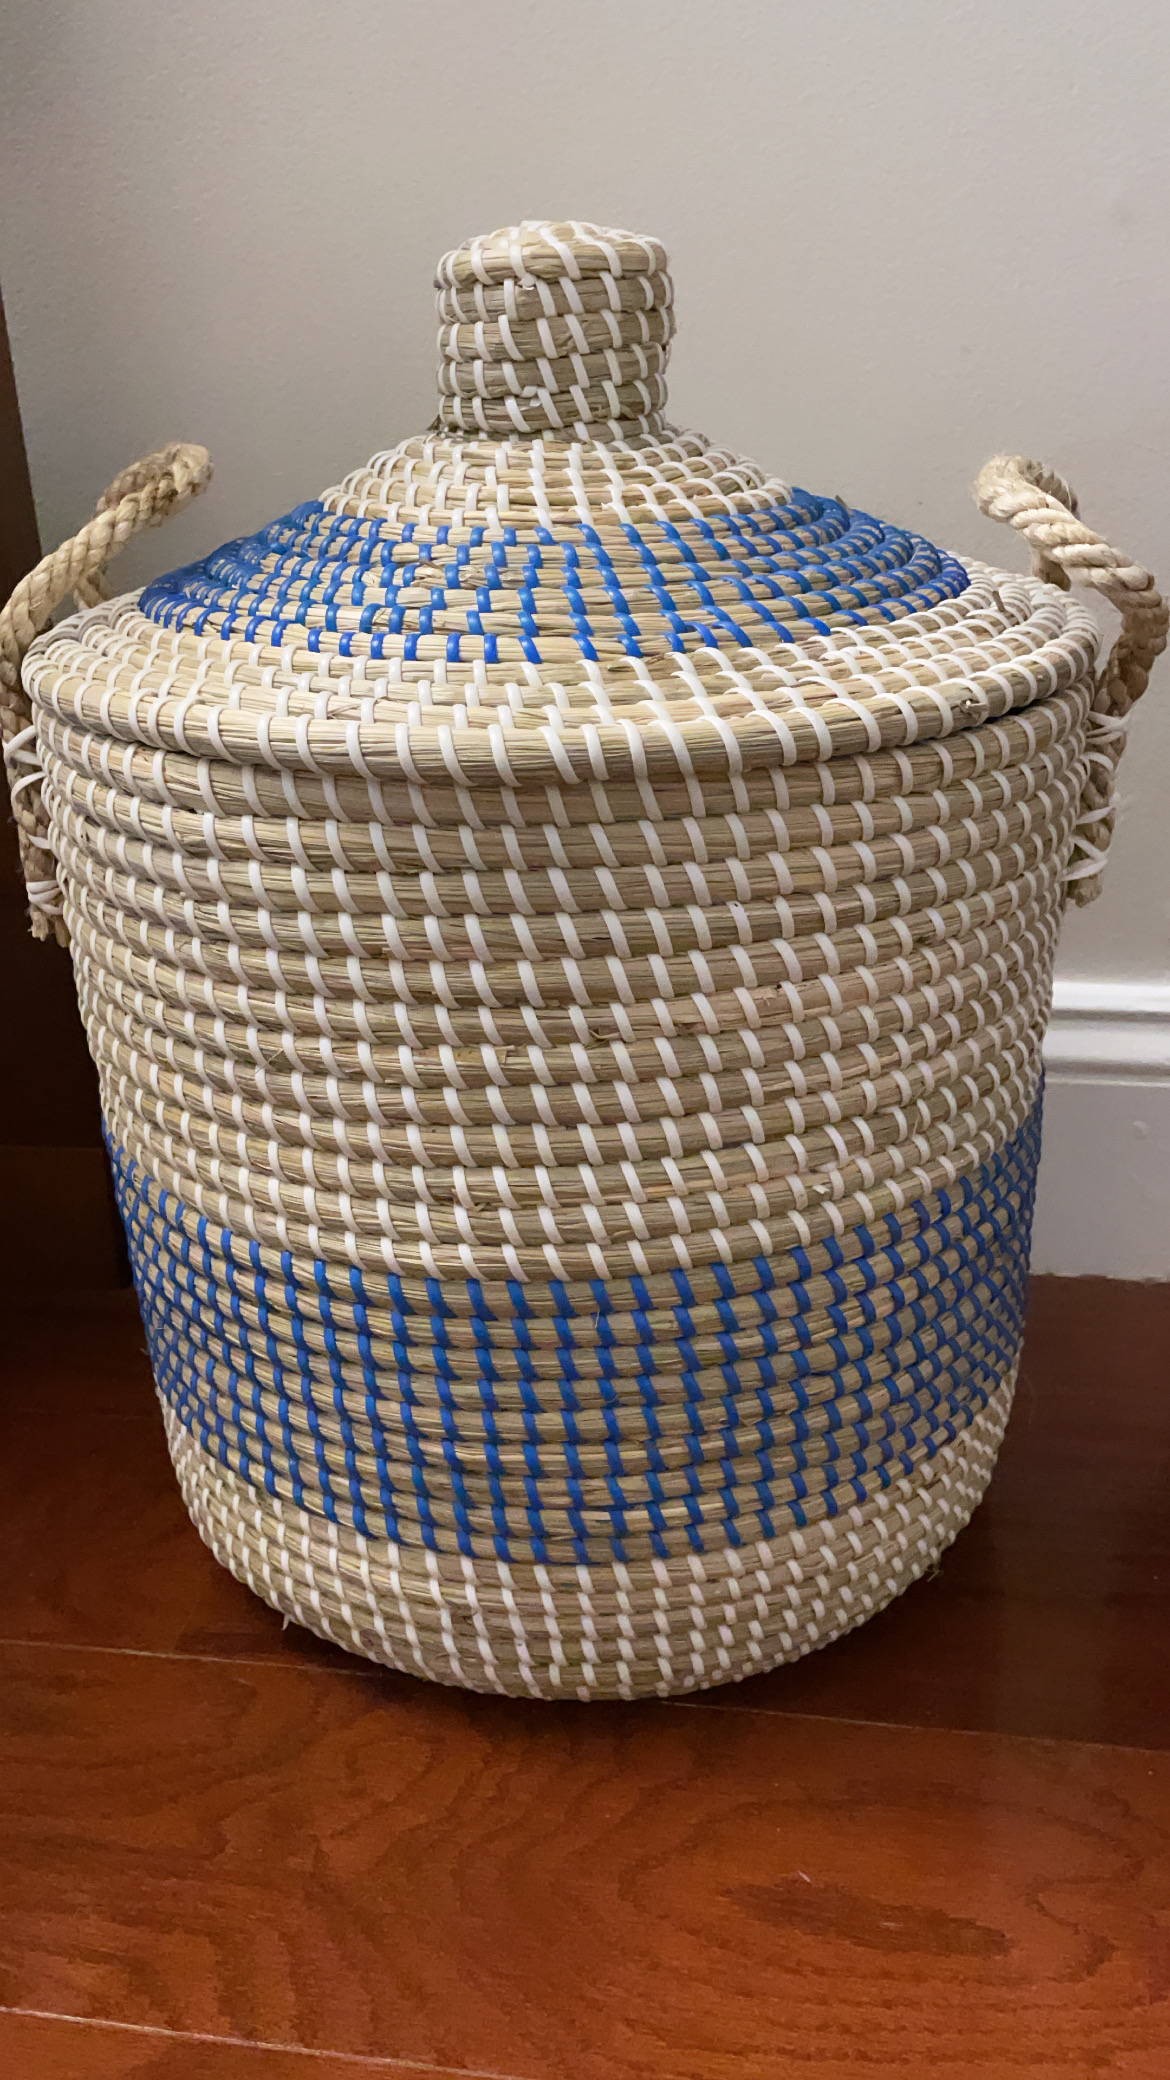 Viet 5 Small Striped Round Hamper With Rope Handles